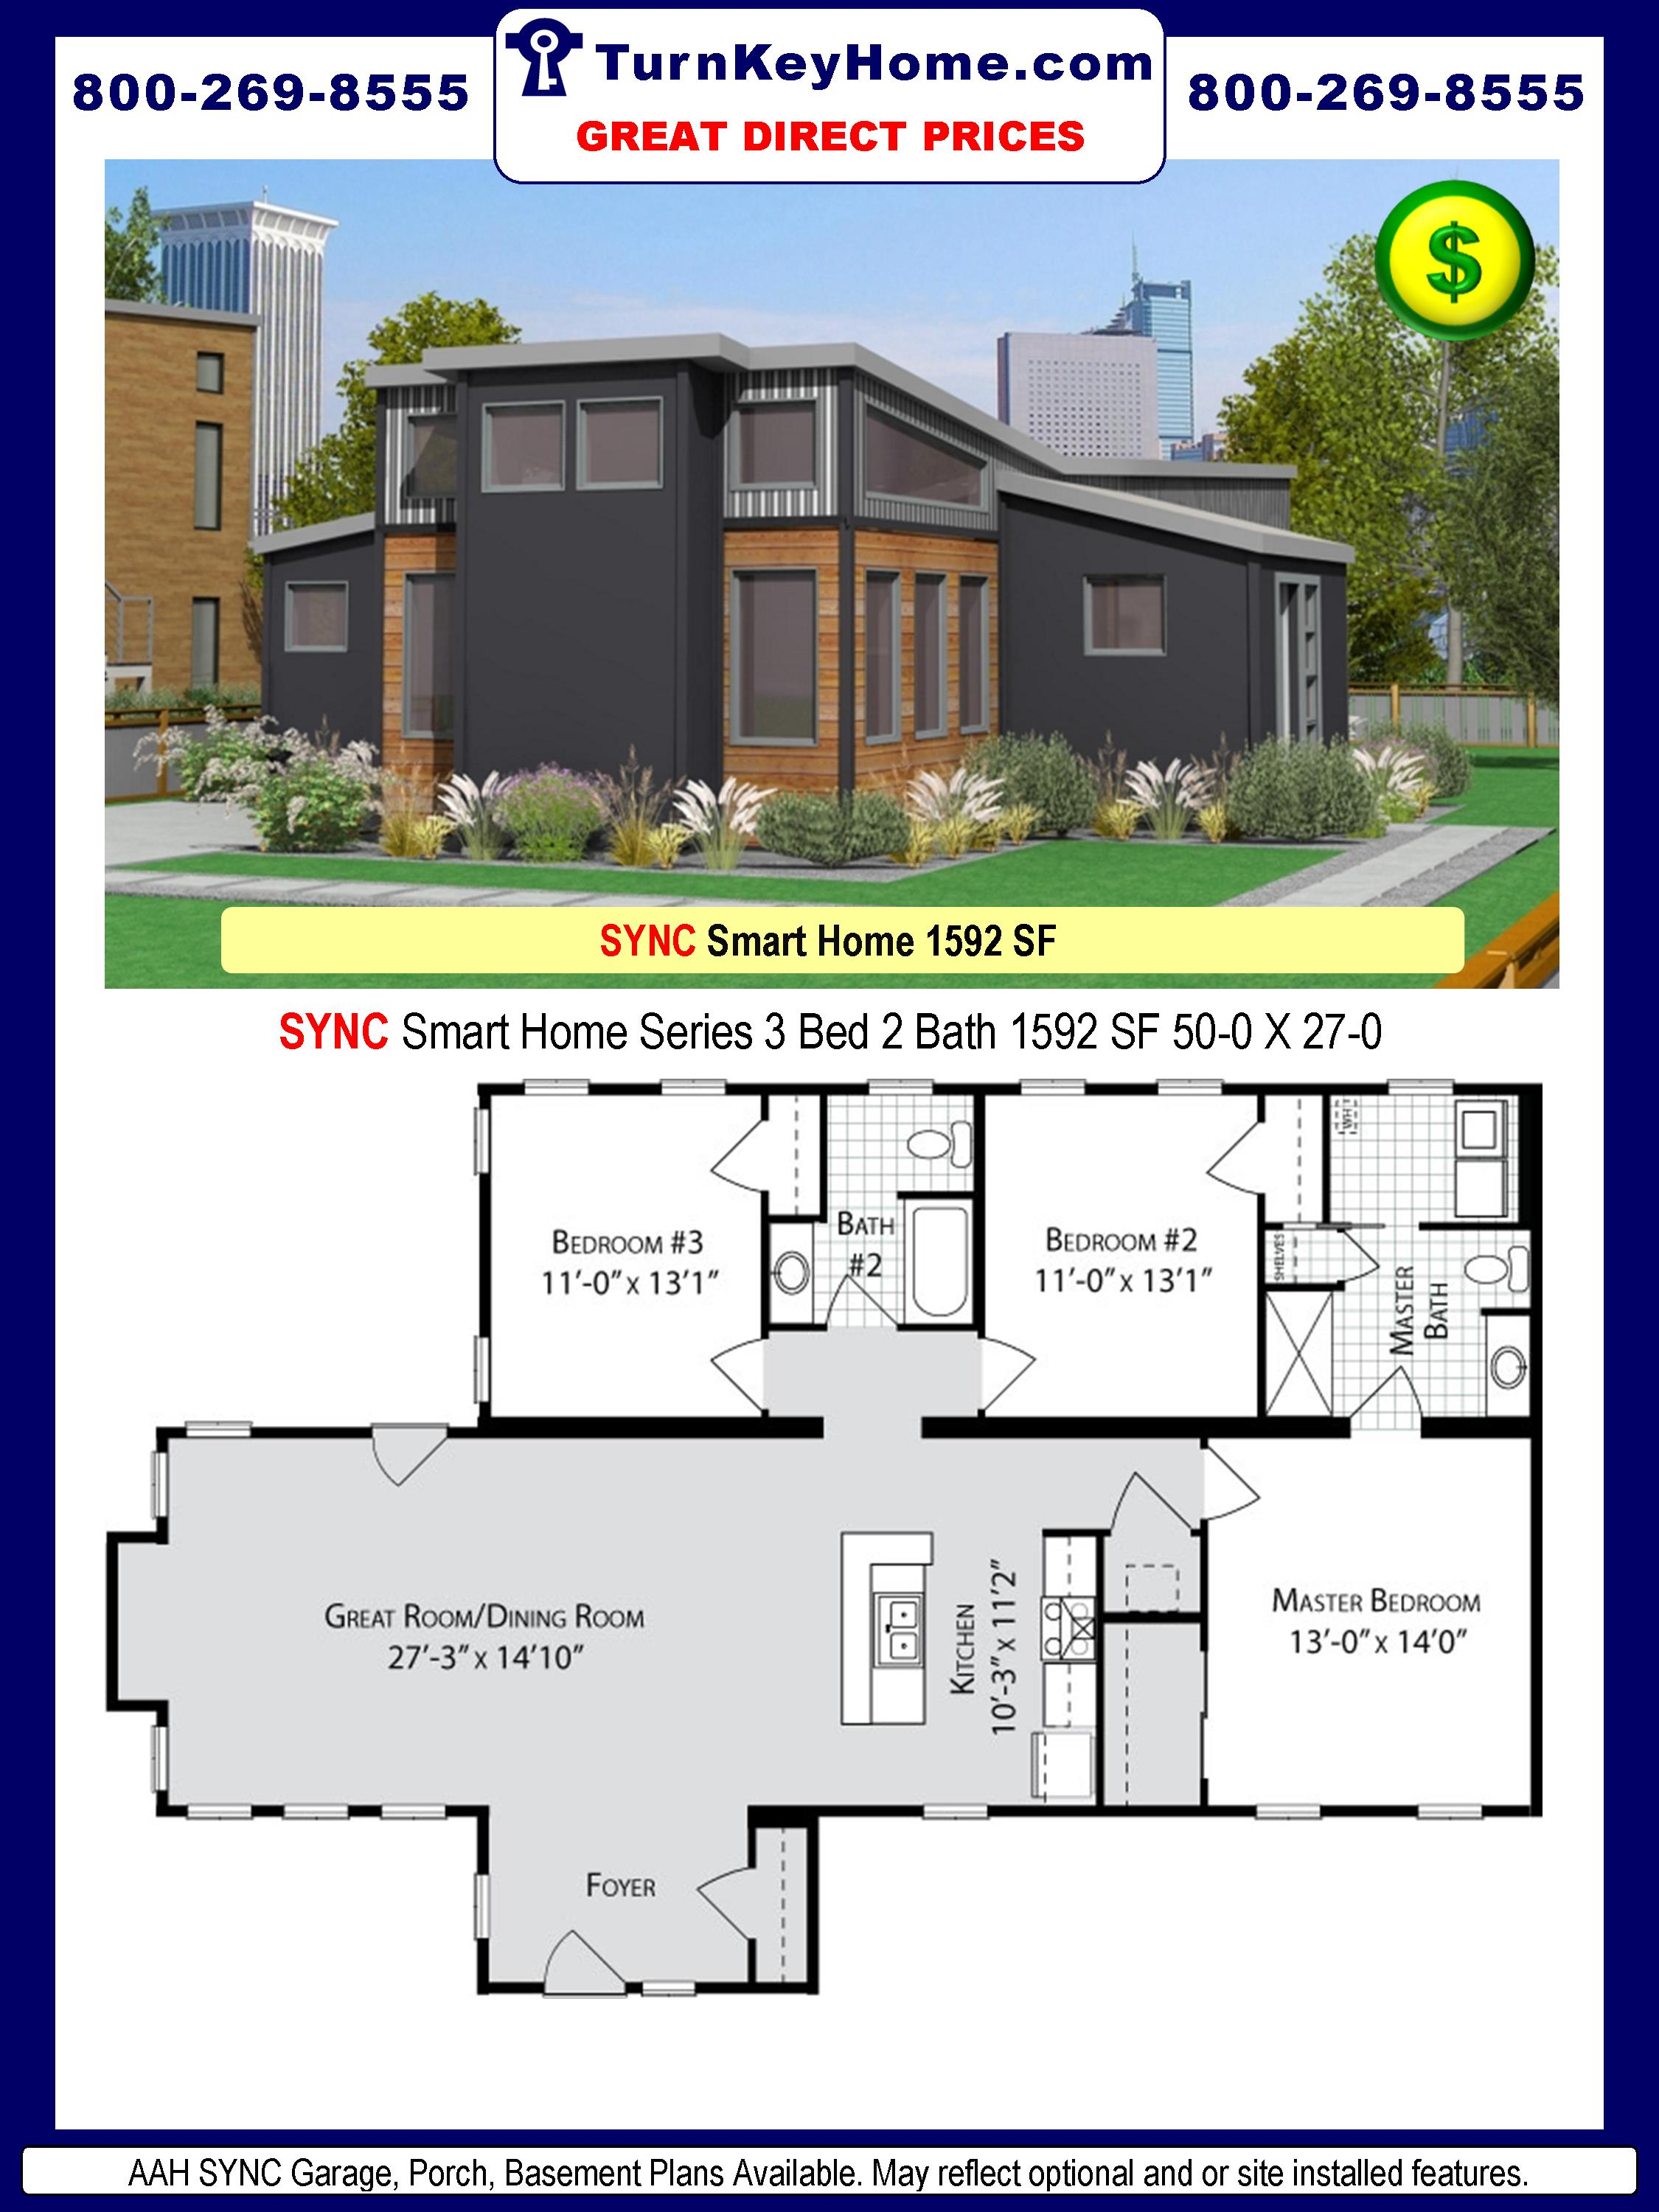 AAH SYNC Smart Home Series 3 Bed 2 Bath 1592 SF 50-0 X 27-0